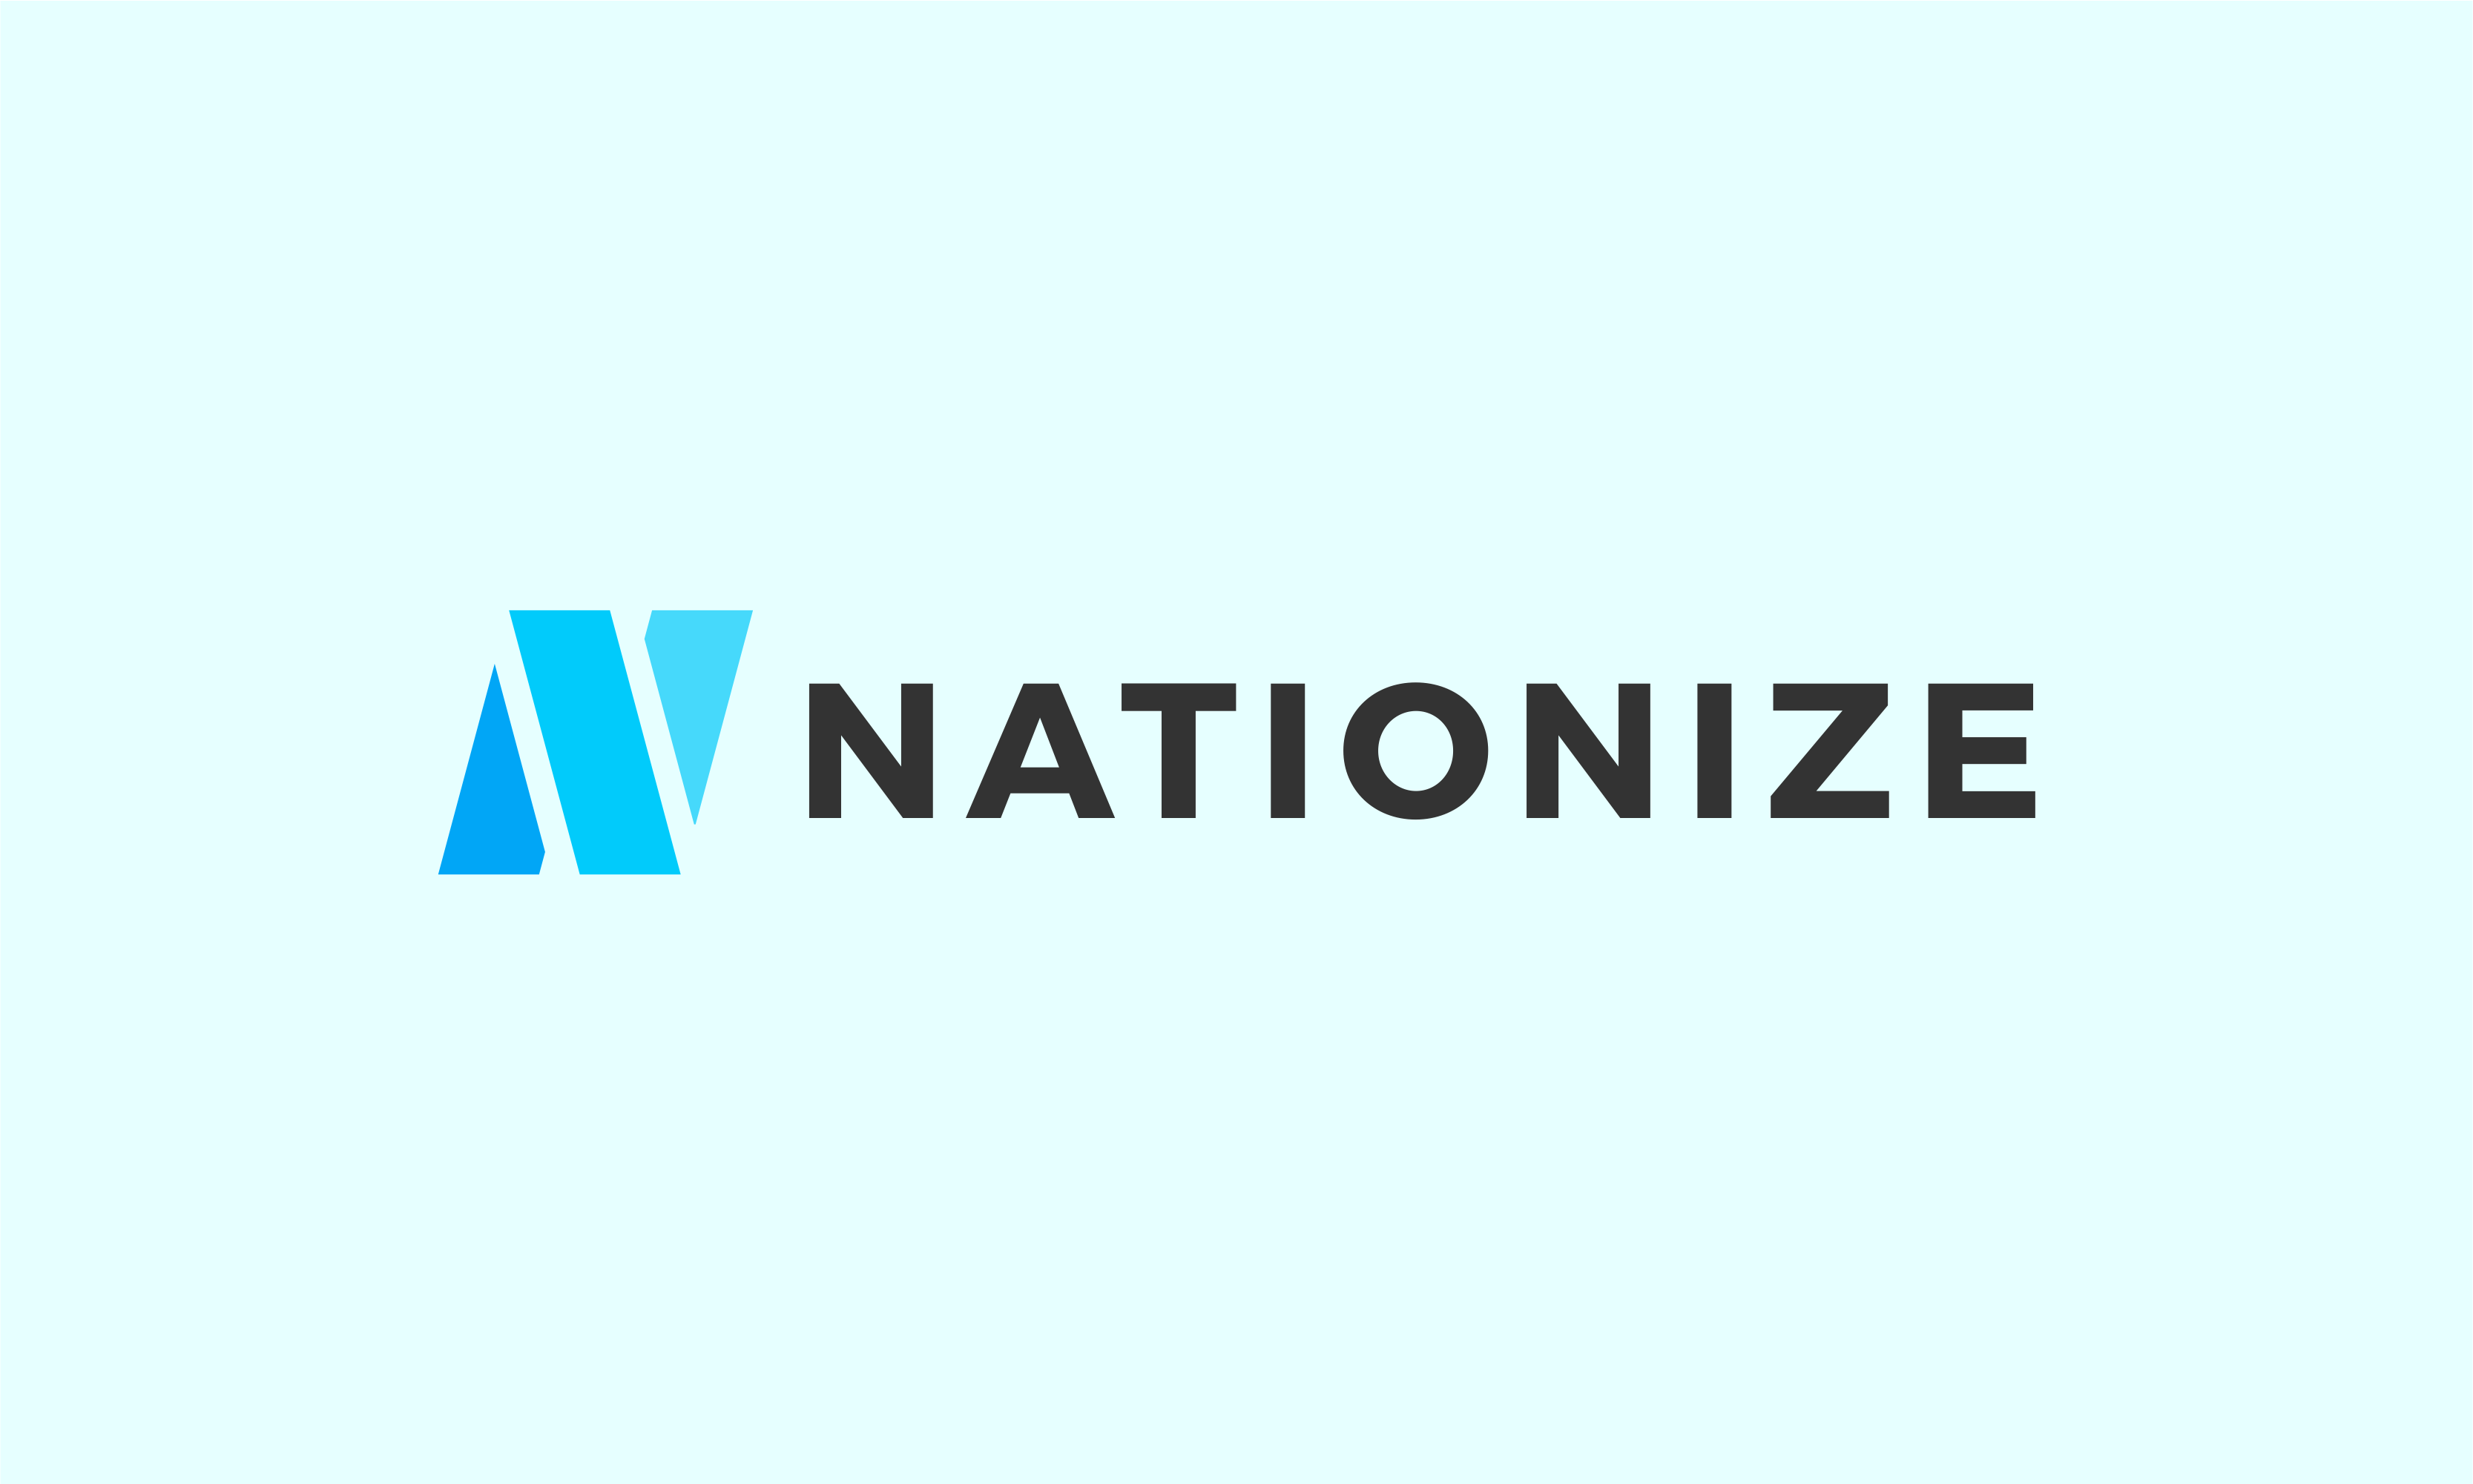 Nationize